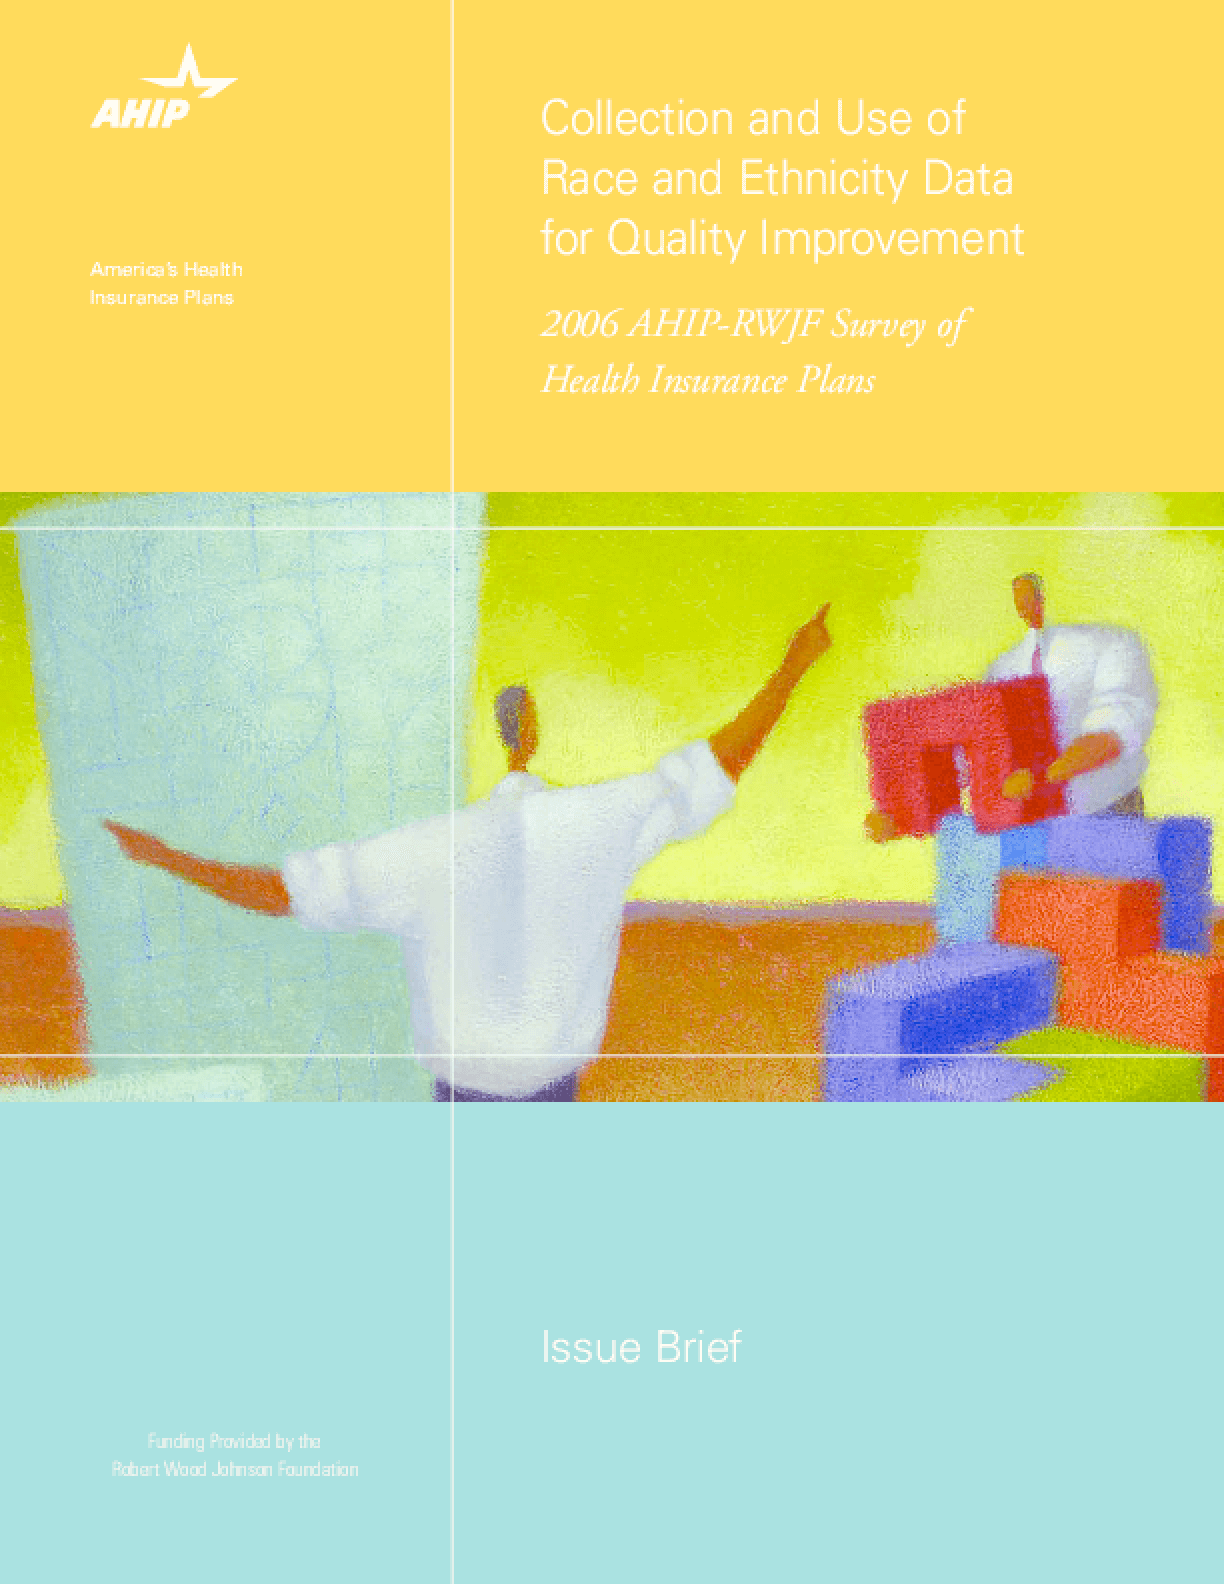 Collection and Use of Race and Ethnicity Data for Quality Improvement